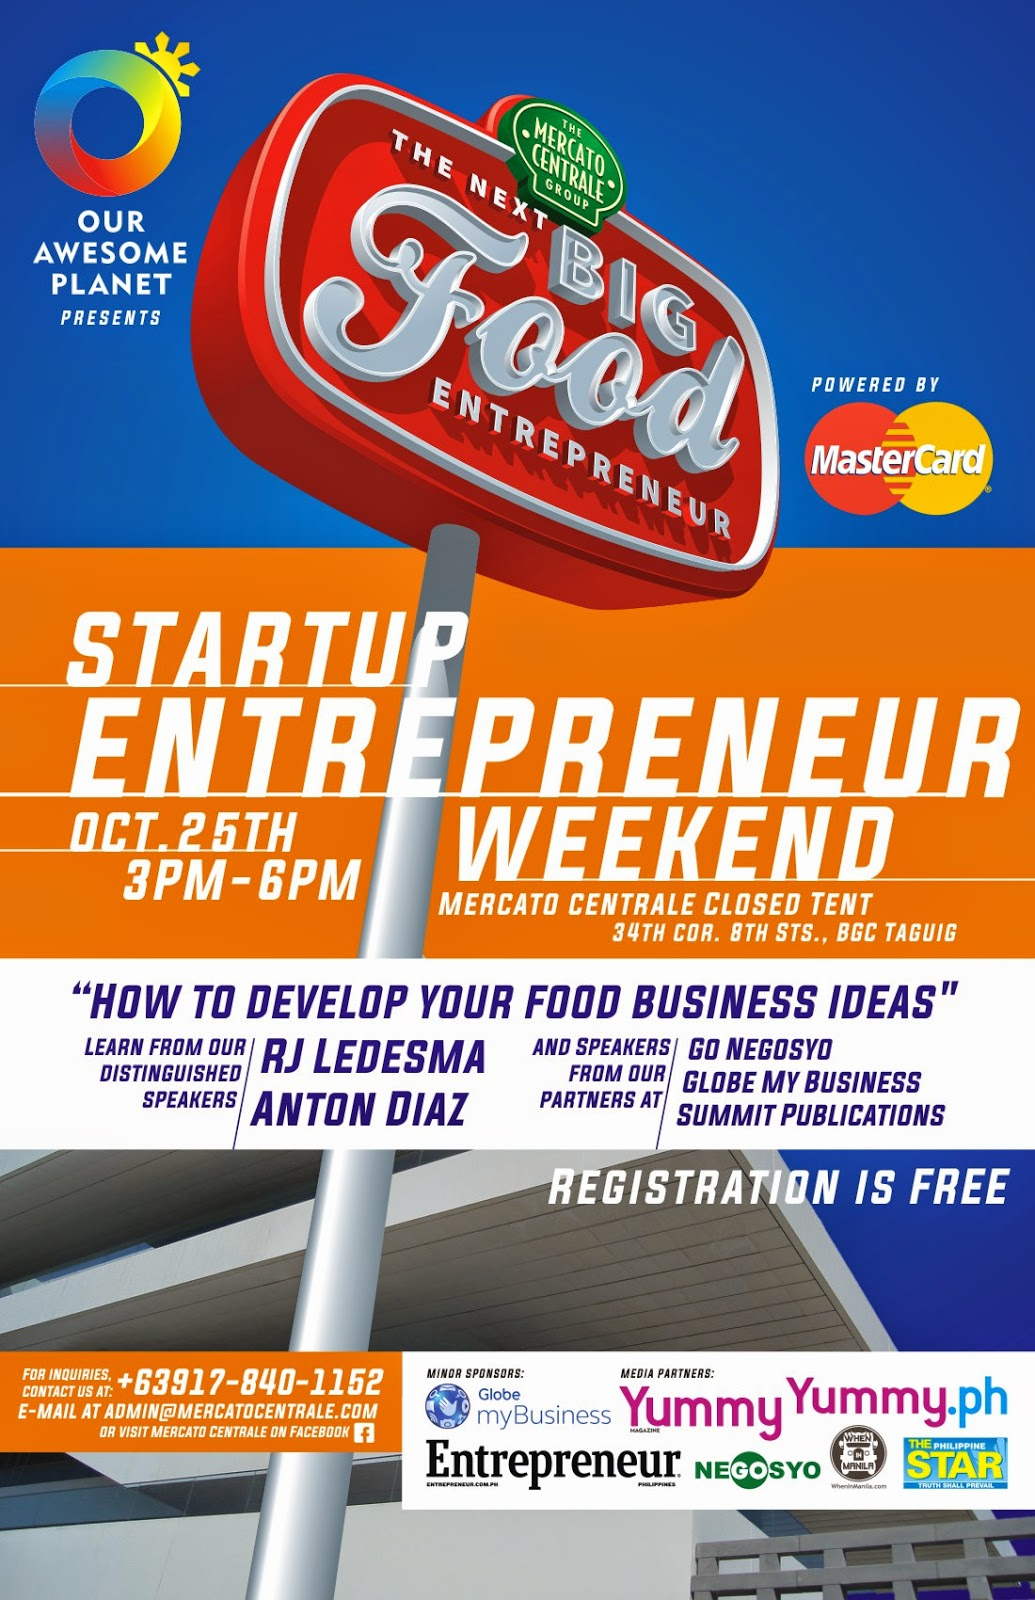 BUSINESS FOOD IDEAS During Our STARTUP ENTREPRENEUR WEEKEND On October 25 Saturday From 300pm To 600pm At Mercato Centrale The Corner Of